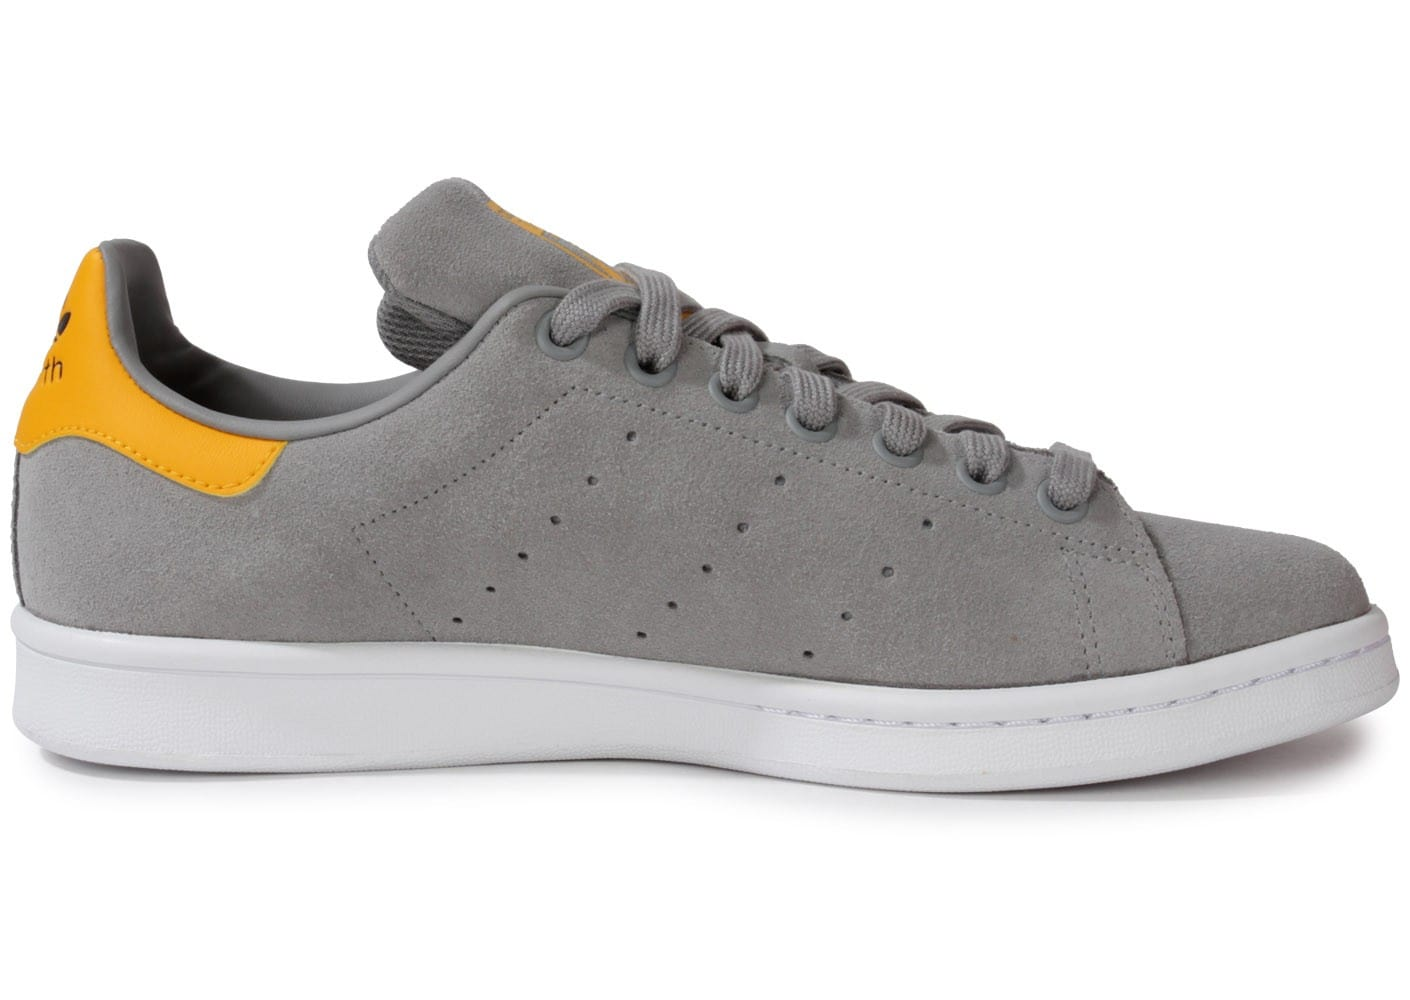 Chaussures adidas STAN SMITH GRISE GOLD vue dessous